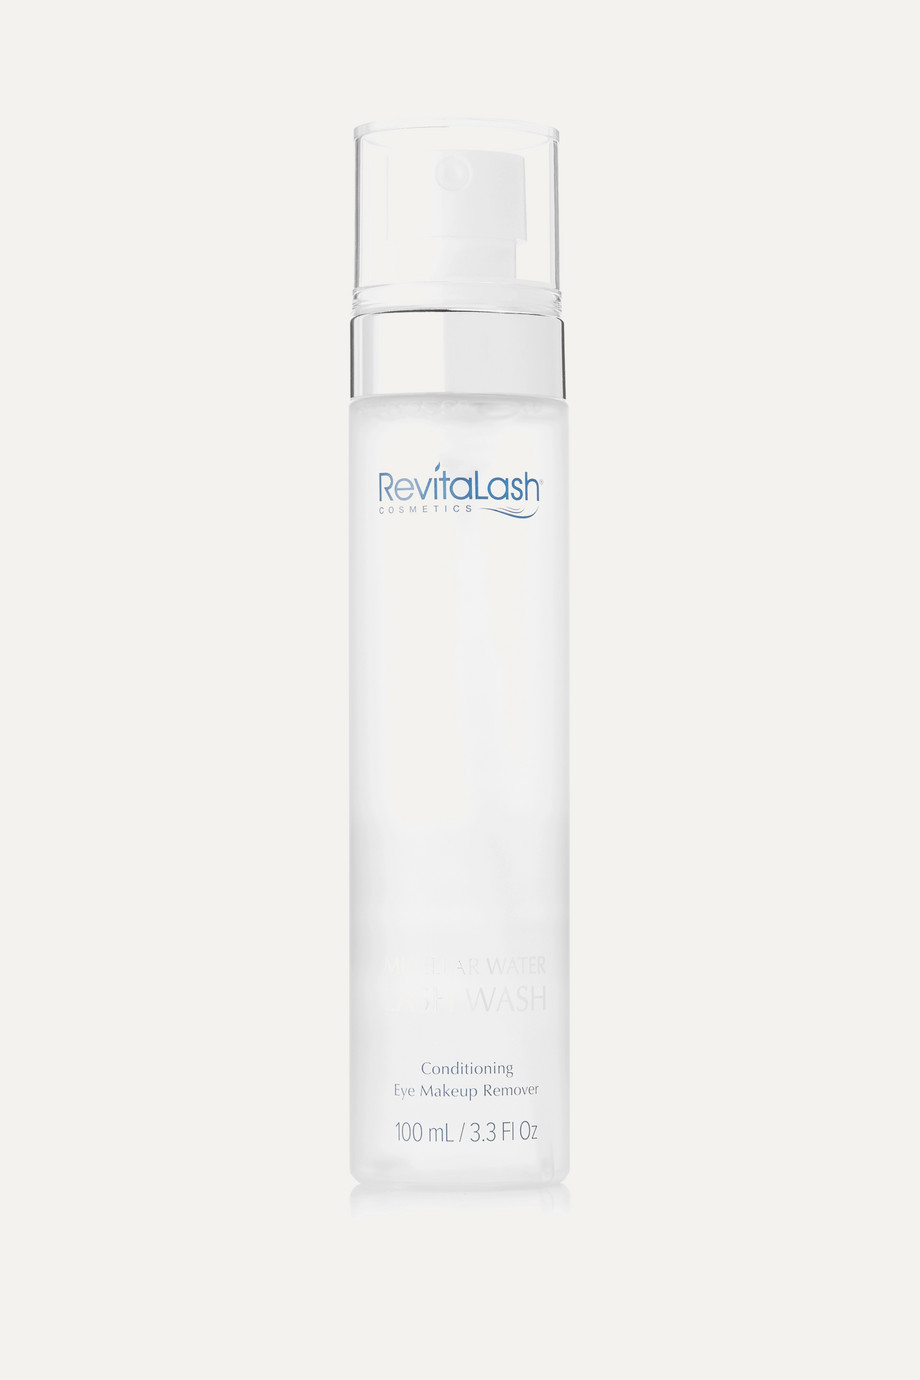 RevitaLash  Micellar Water Lash Wash Eye Makeup Remover, 100ml